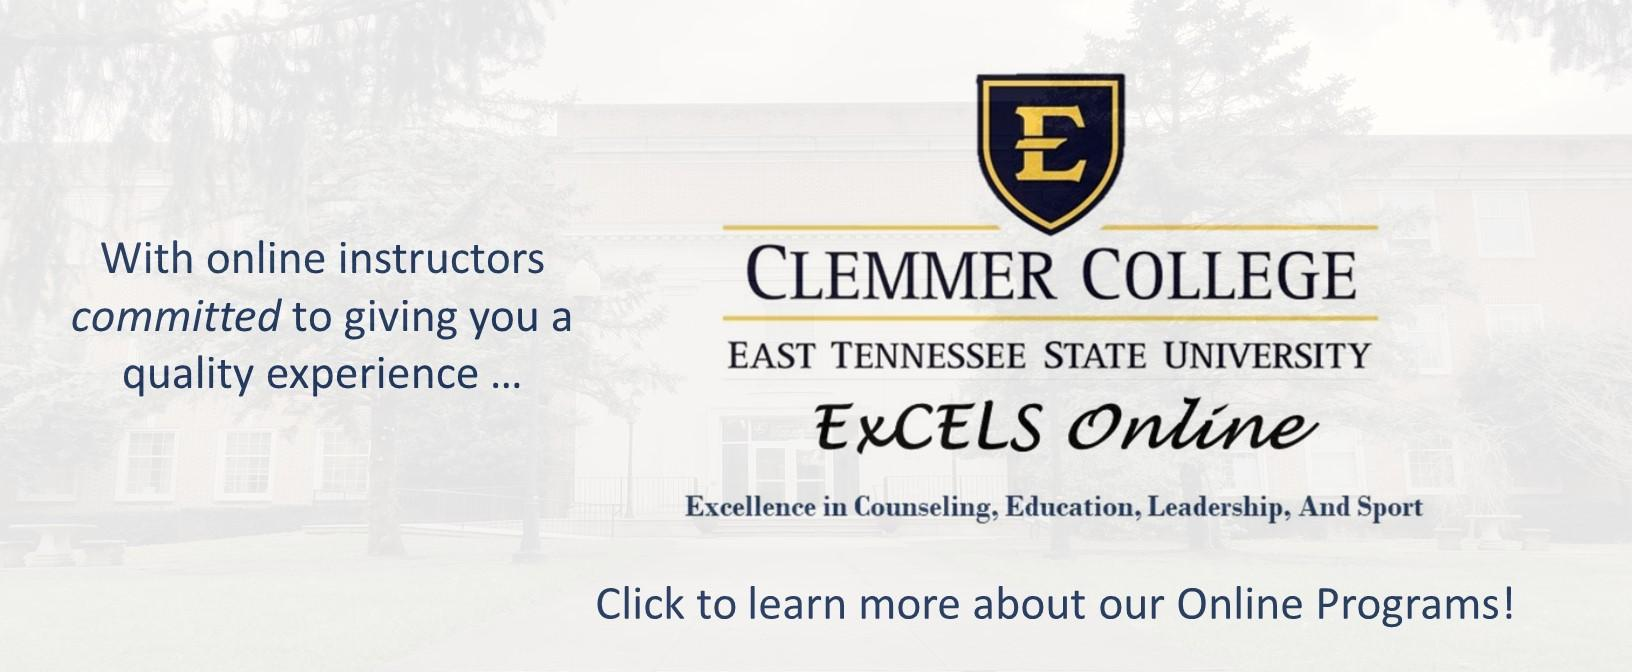 Clemmer College Online Programs  Click to access list